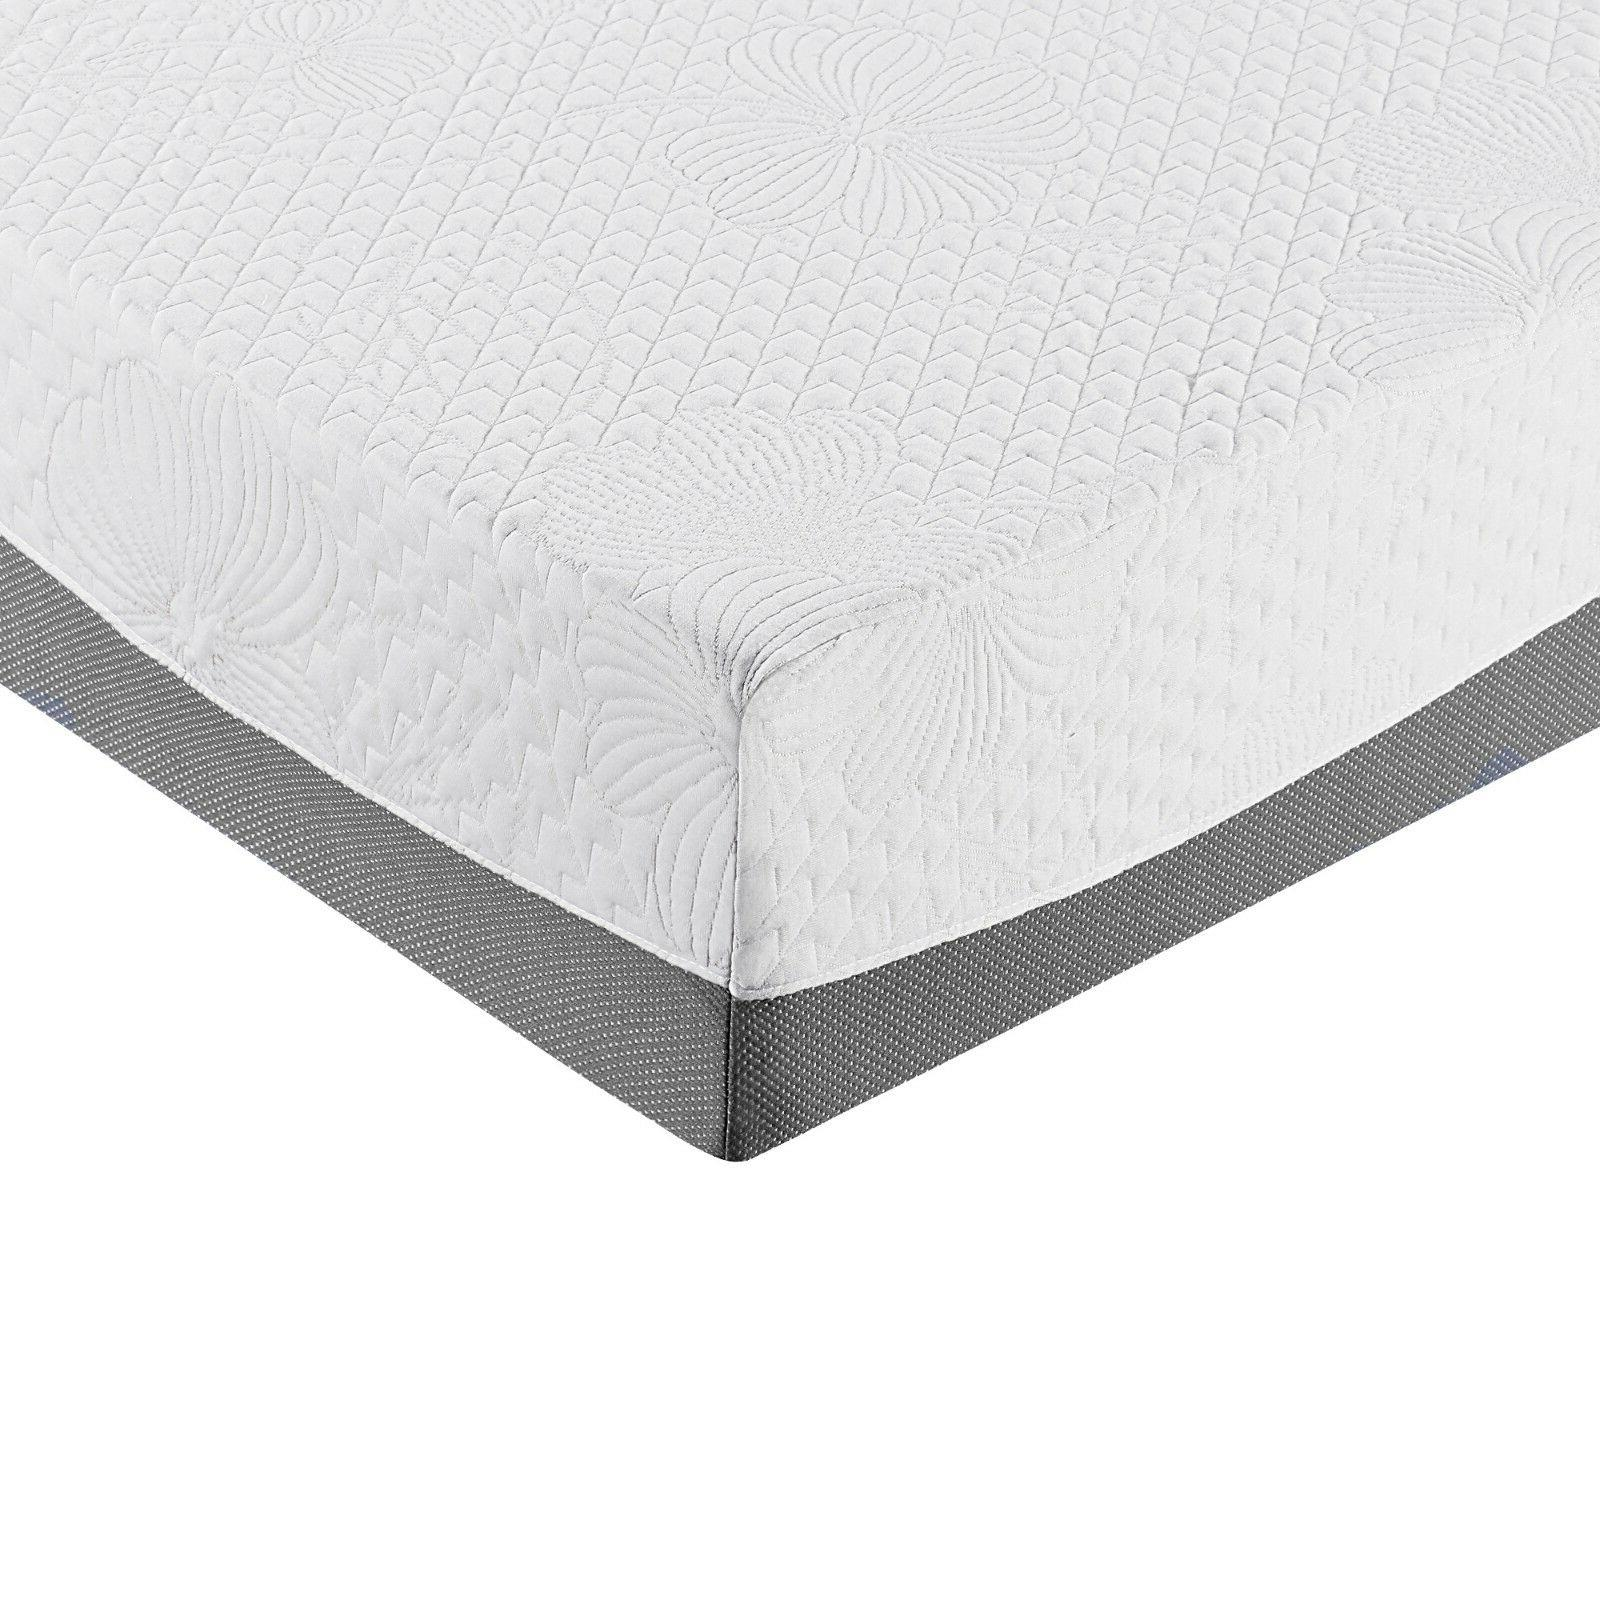 SLEEPLACE 10 GEL Memory Foam Mattress